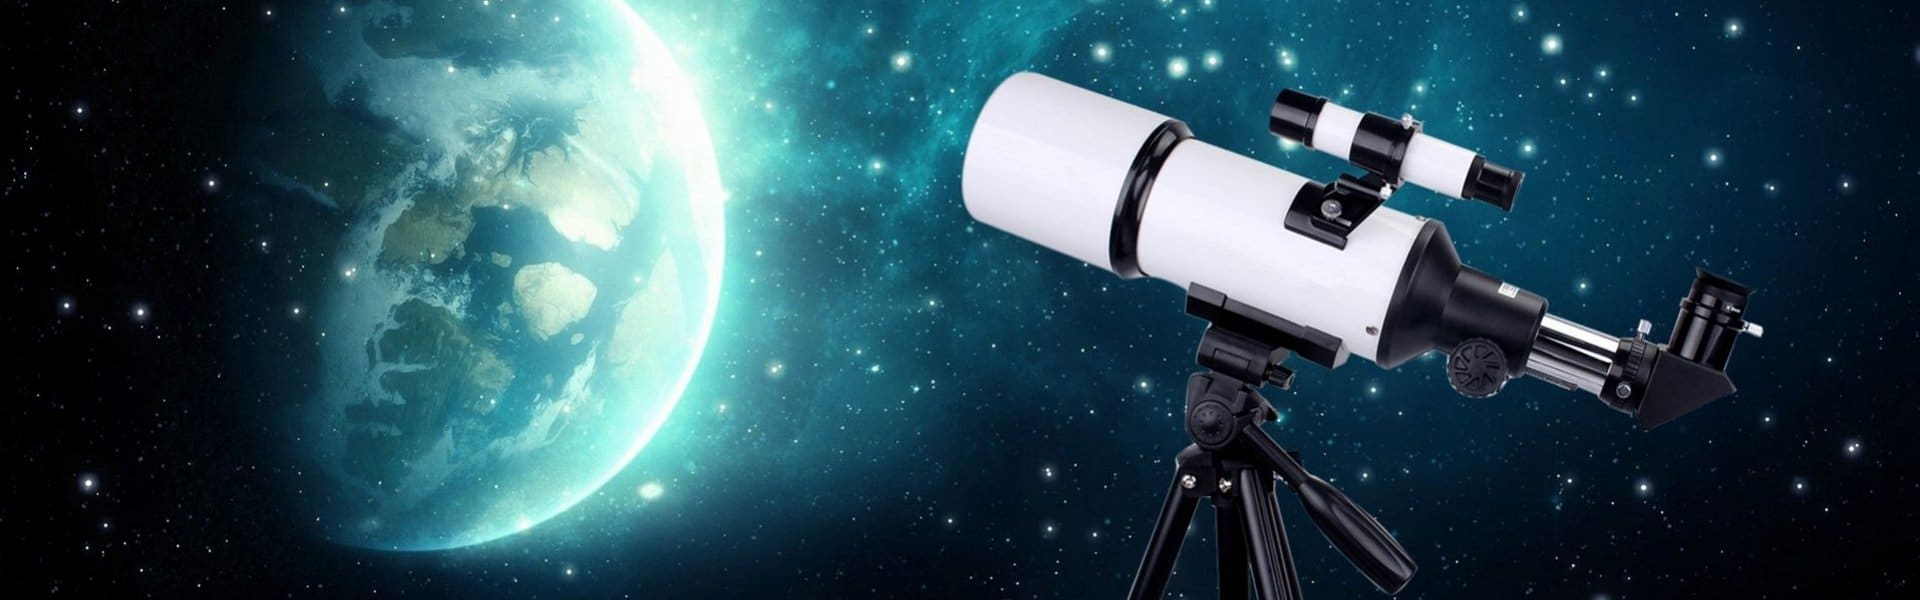 Best Telescopes for Viewing Planets